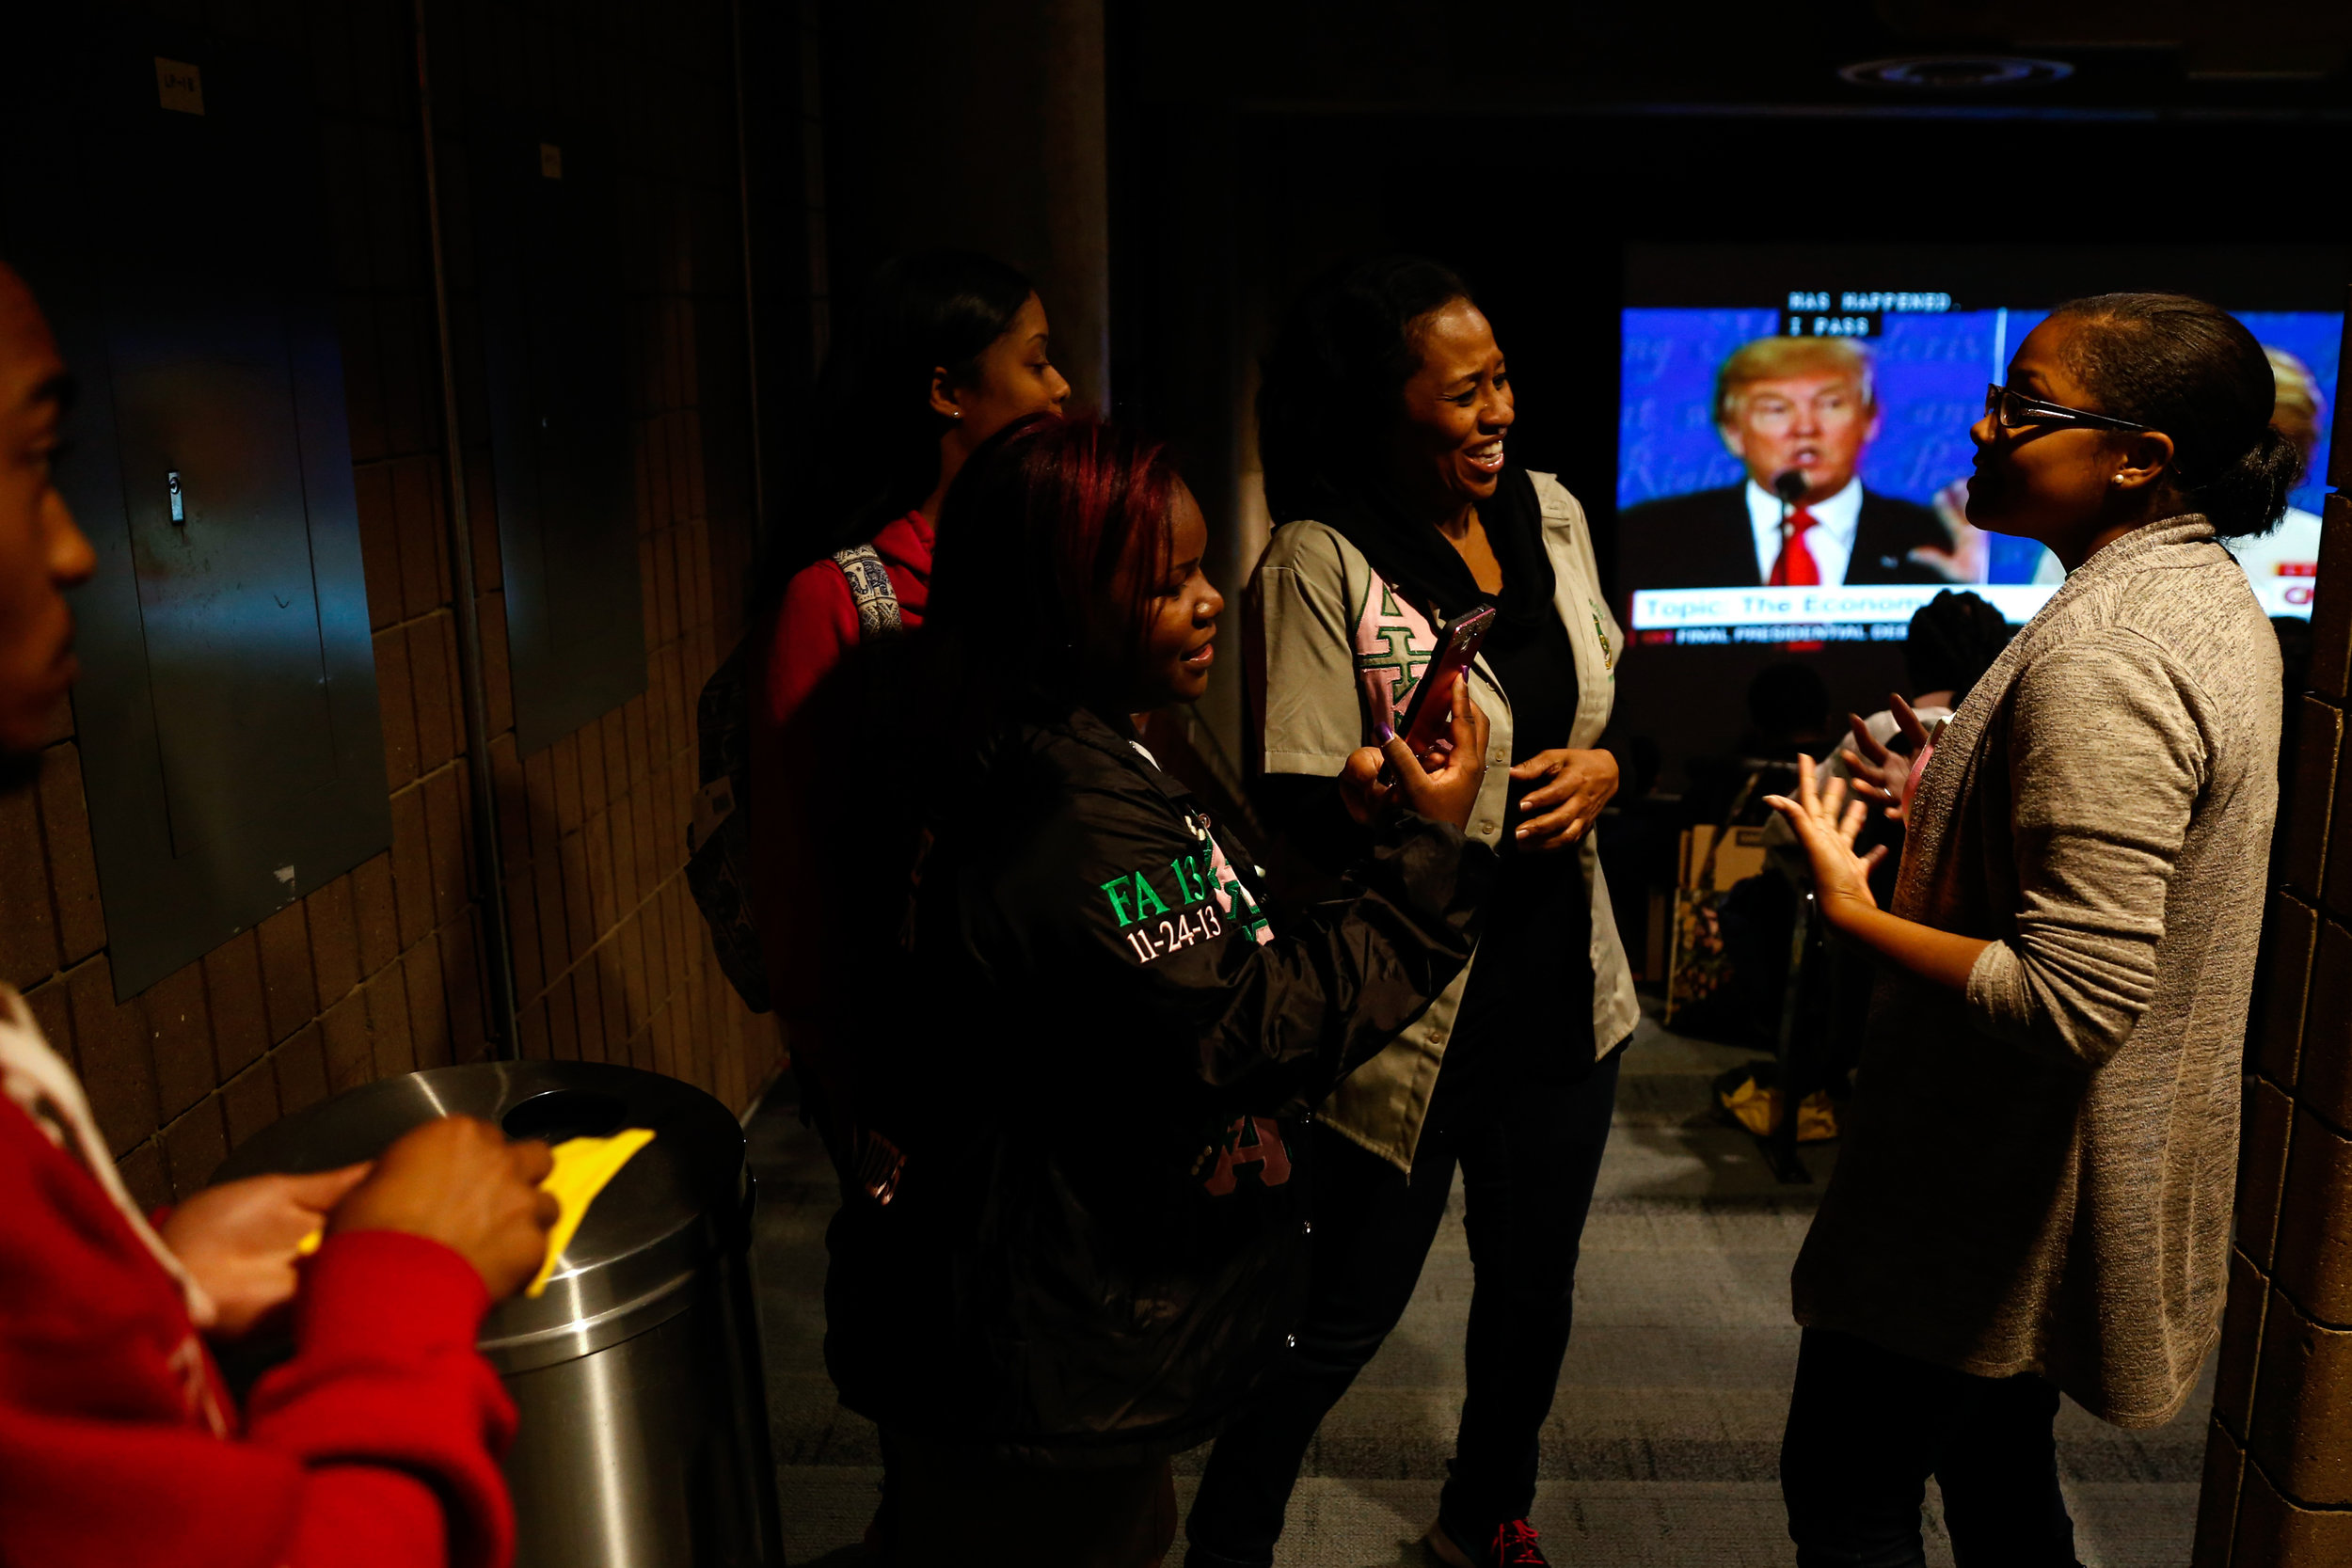 "Corey Taylor, a graduate advisor for Alpha Kappa Alpha Sorority, Inc., laughs while talking to Diamond Wilder, a senior at UM-Flint, right, while gathering with over 30 students, faculty, staff and community members in the Kiva to watch the Presidential debate on Wednesday, Oct. 19, 2016 at UM-Flint in downtown Flint. ""You need to be aware...and able to advocate for what you think is right for our country...and on a local level within your community,"" said Phaejare Thomas, president of Alpha Kappa Alpha Sorority, Incorperated Xi Chi chapter and a senior nursing student at UM-Flint."